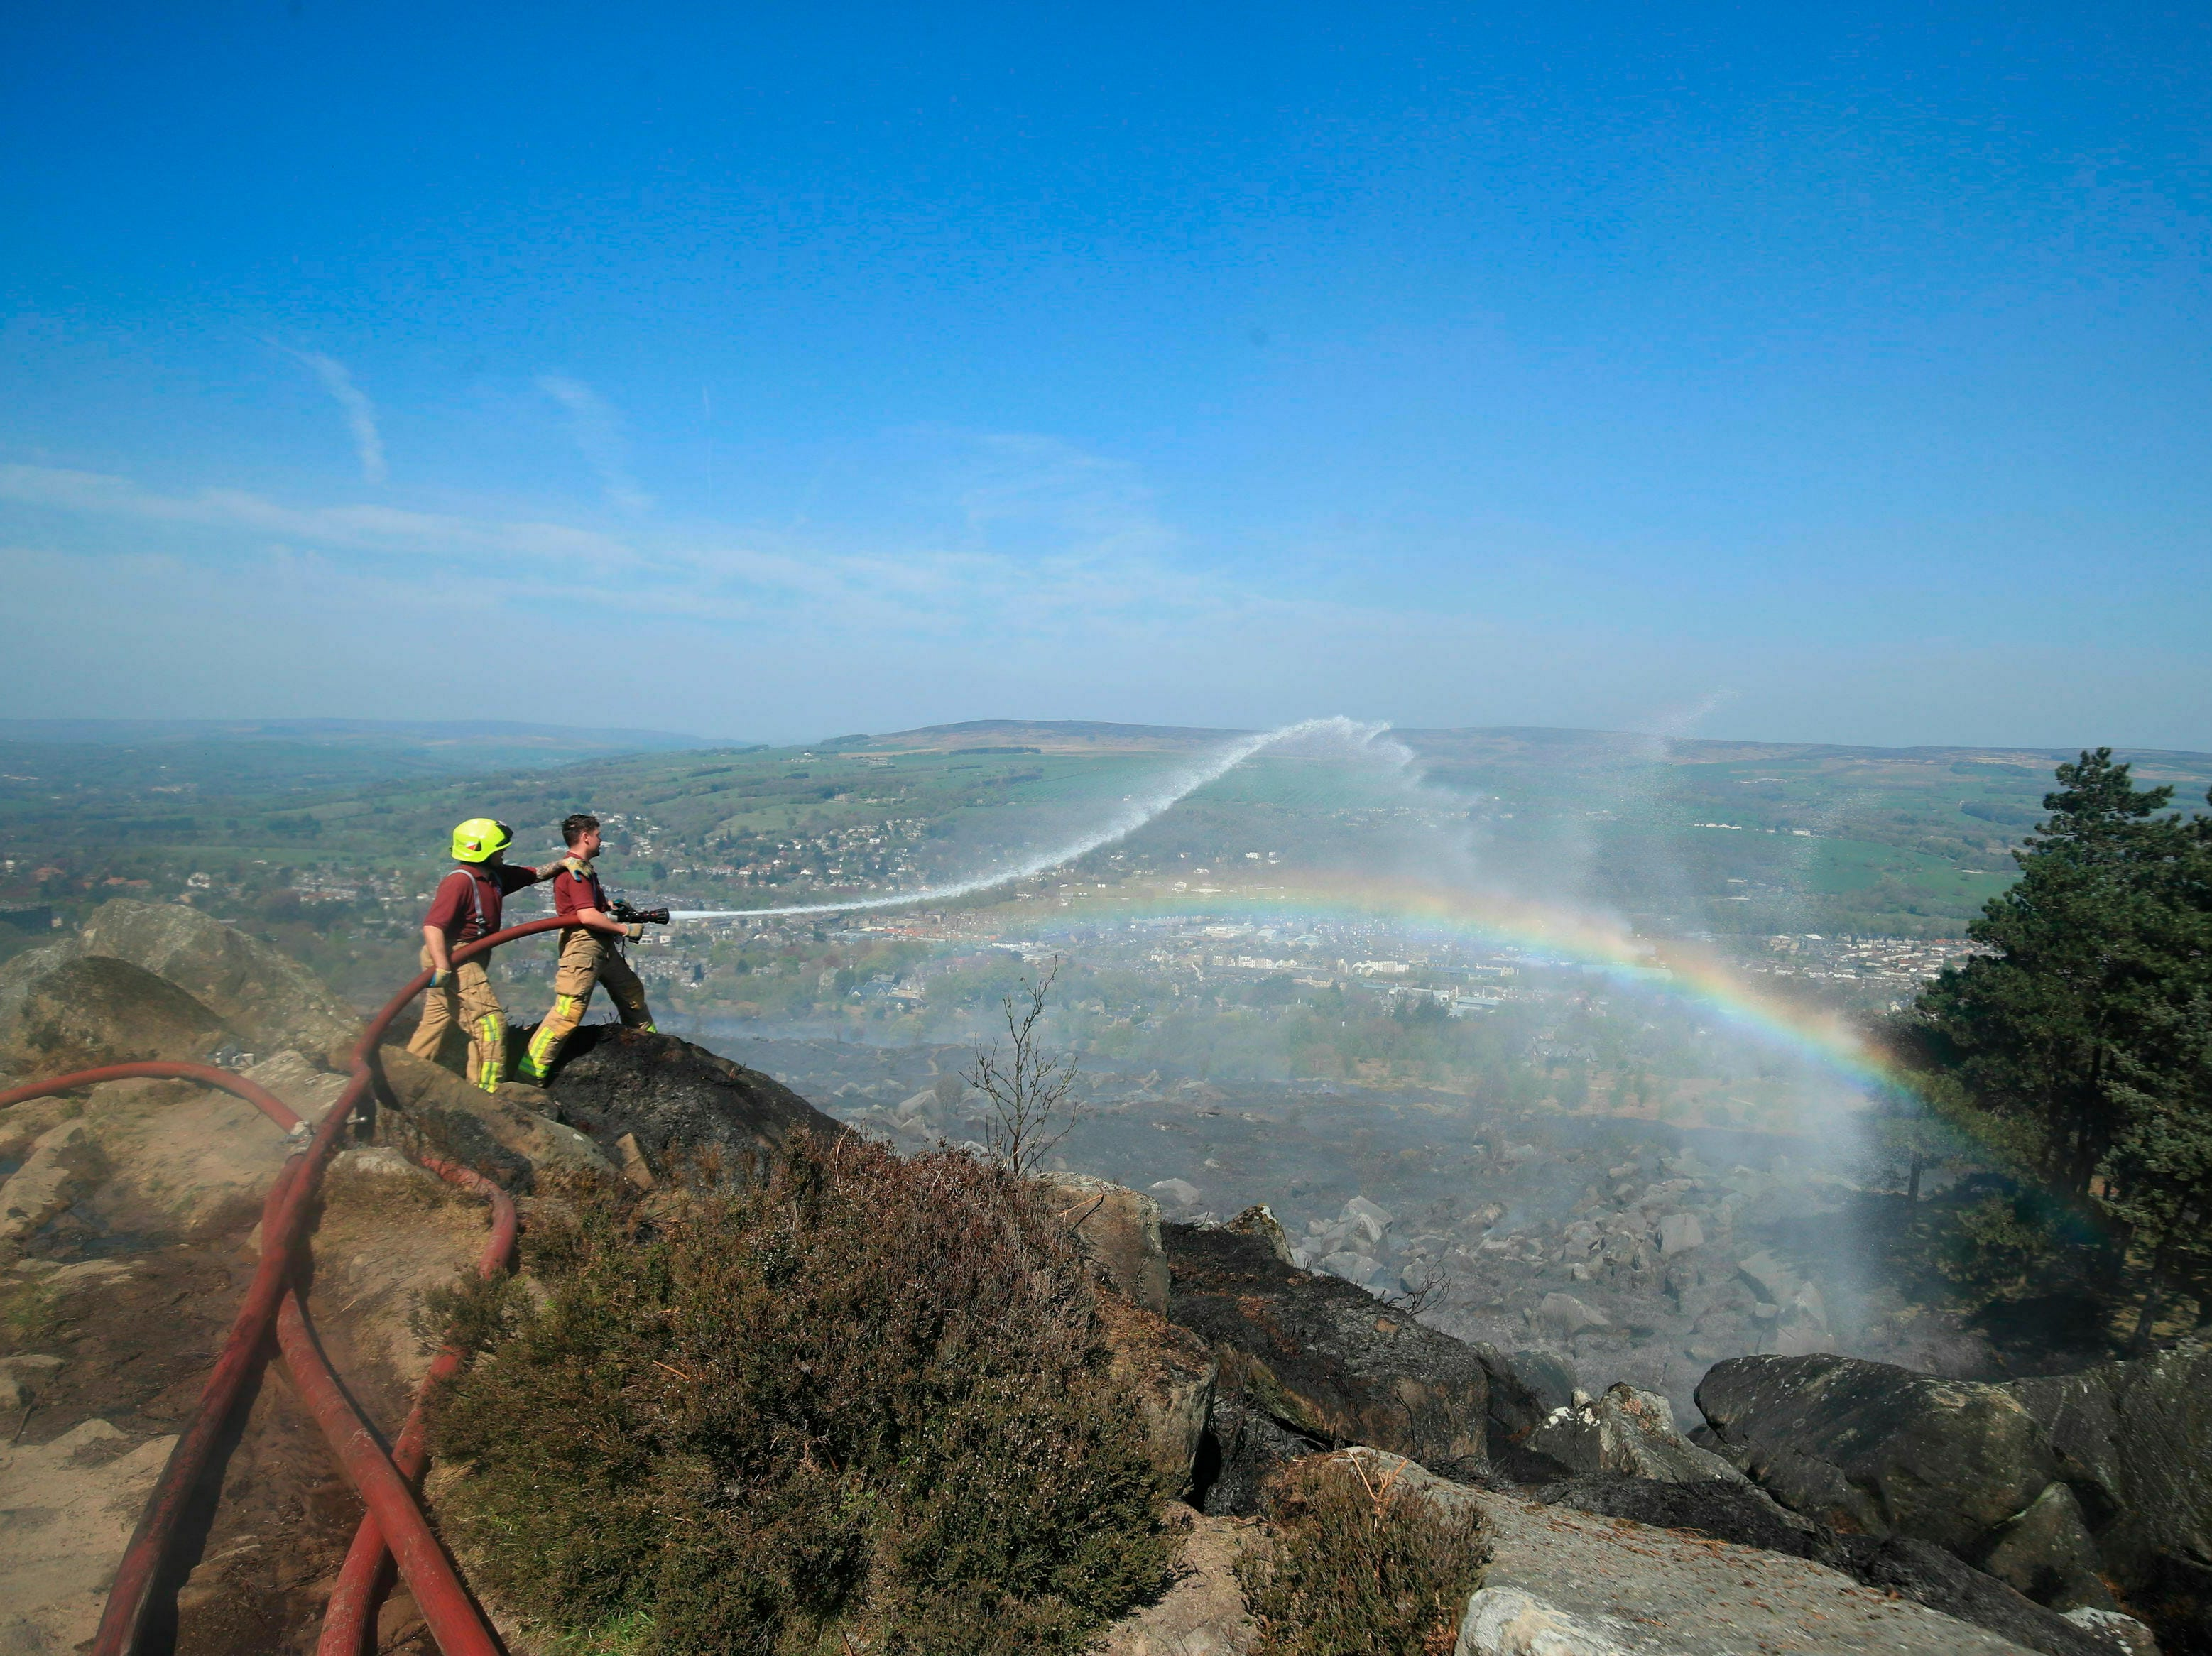 Firefighters tackle a large fire which is continuing to burn on Ilkley Moor in West Yorkshire, north England, Sunday April 21,